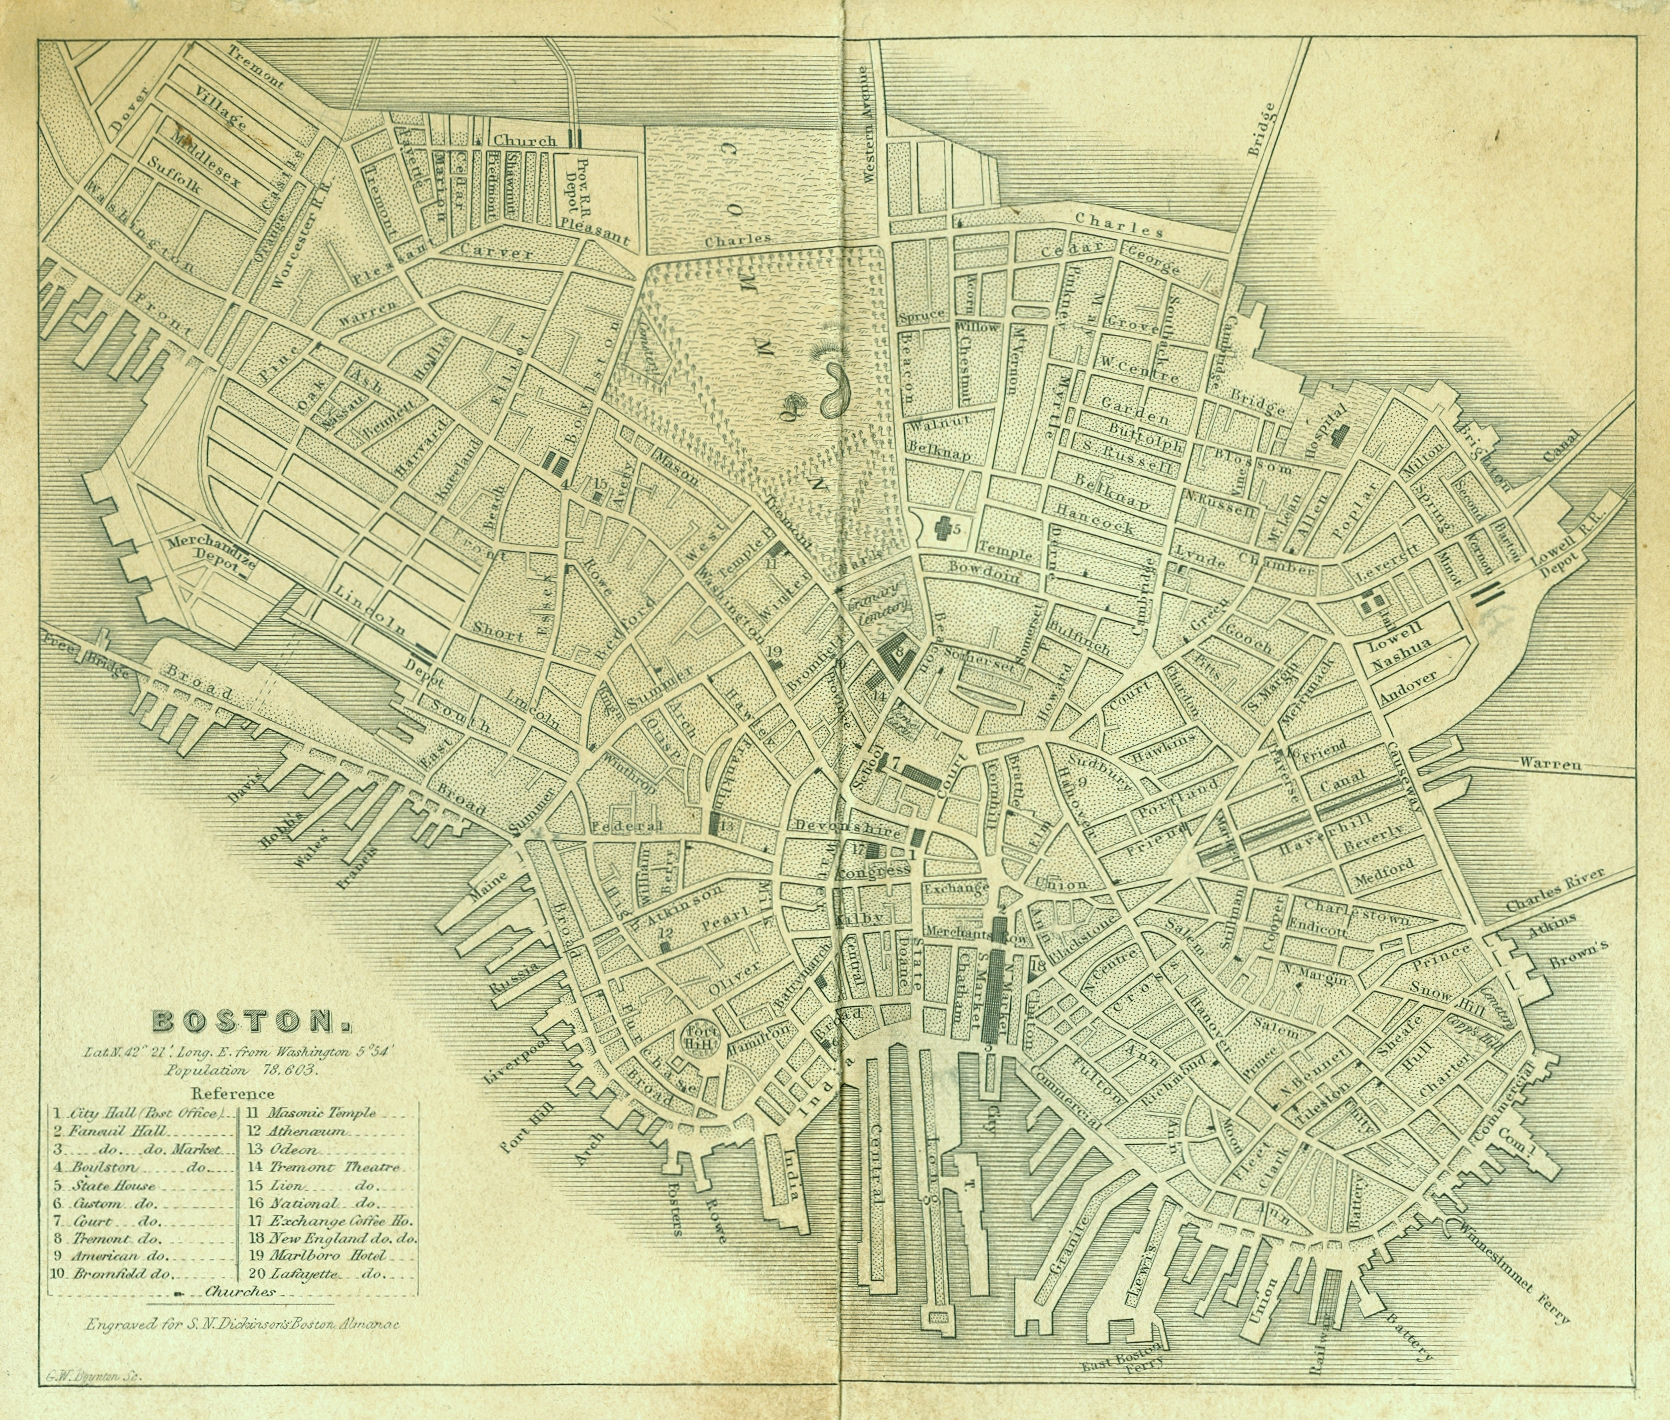 Boston Map, 1838